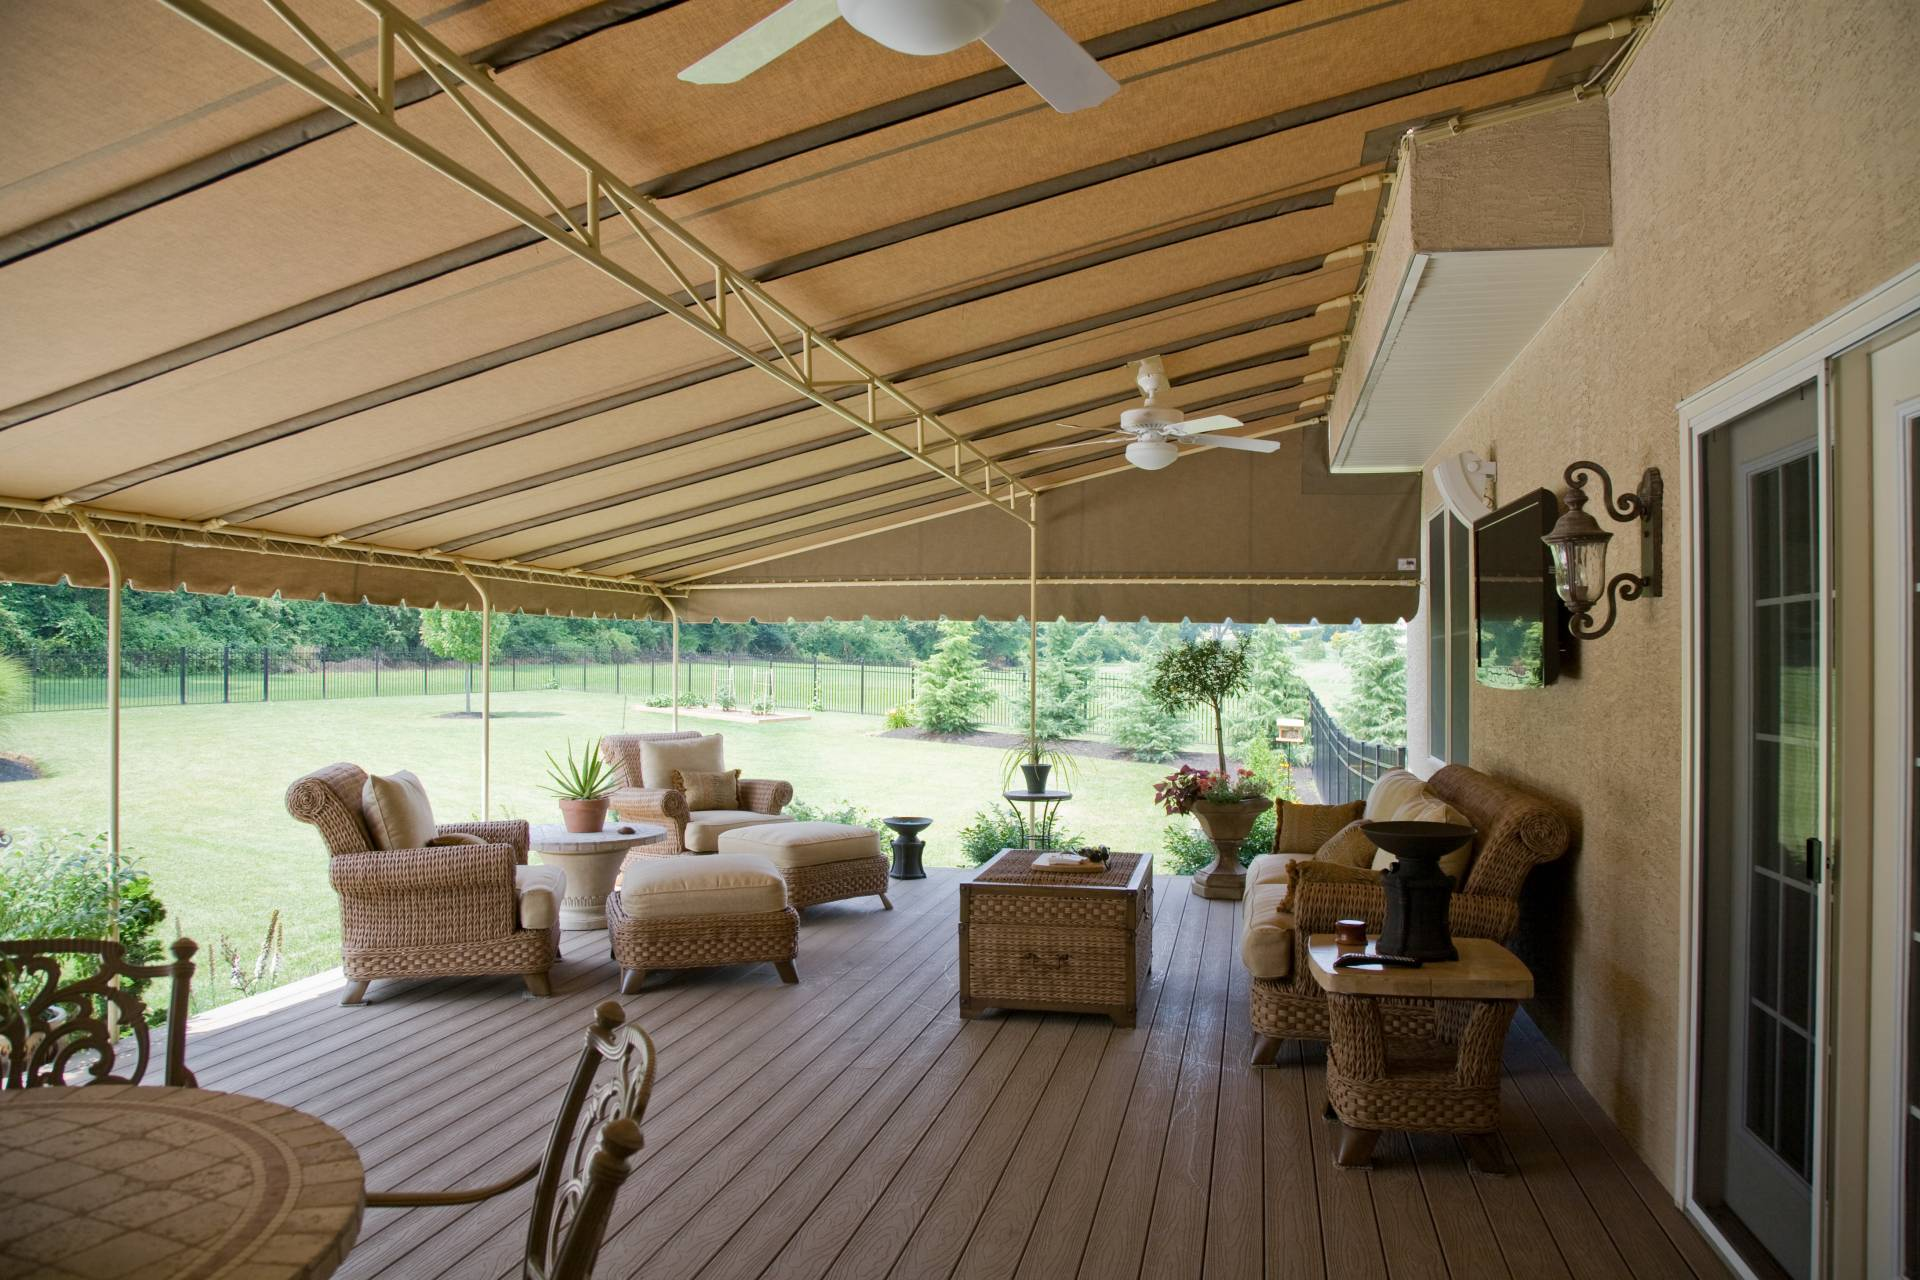 deck blog arbors us shade and over a r pergola pergolas awning structures building decks canopies